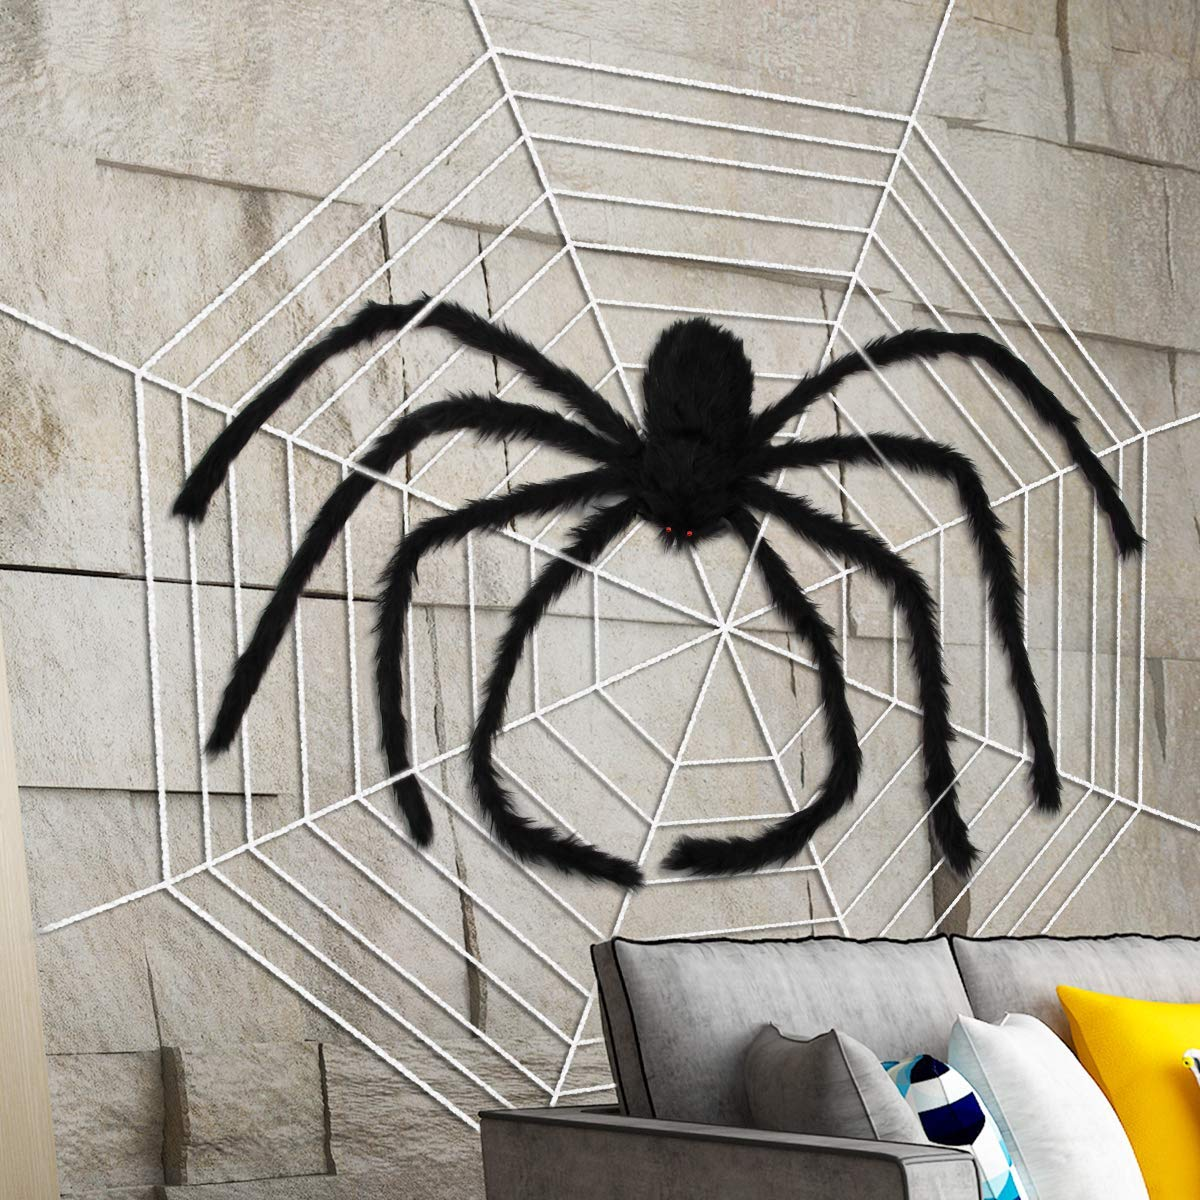 79 Inch Black Aiduy Outdoor Halloween Decorations Scary Giant Spider Fake Large Spider Hairy Spider Props for Halloween Yard Decorations Party Decor